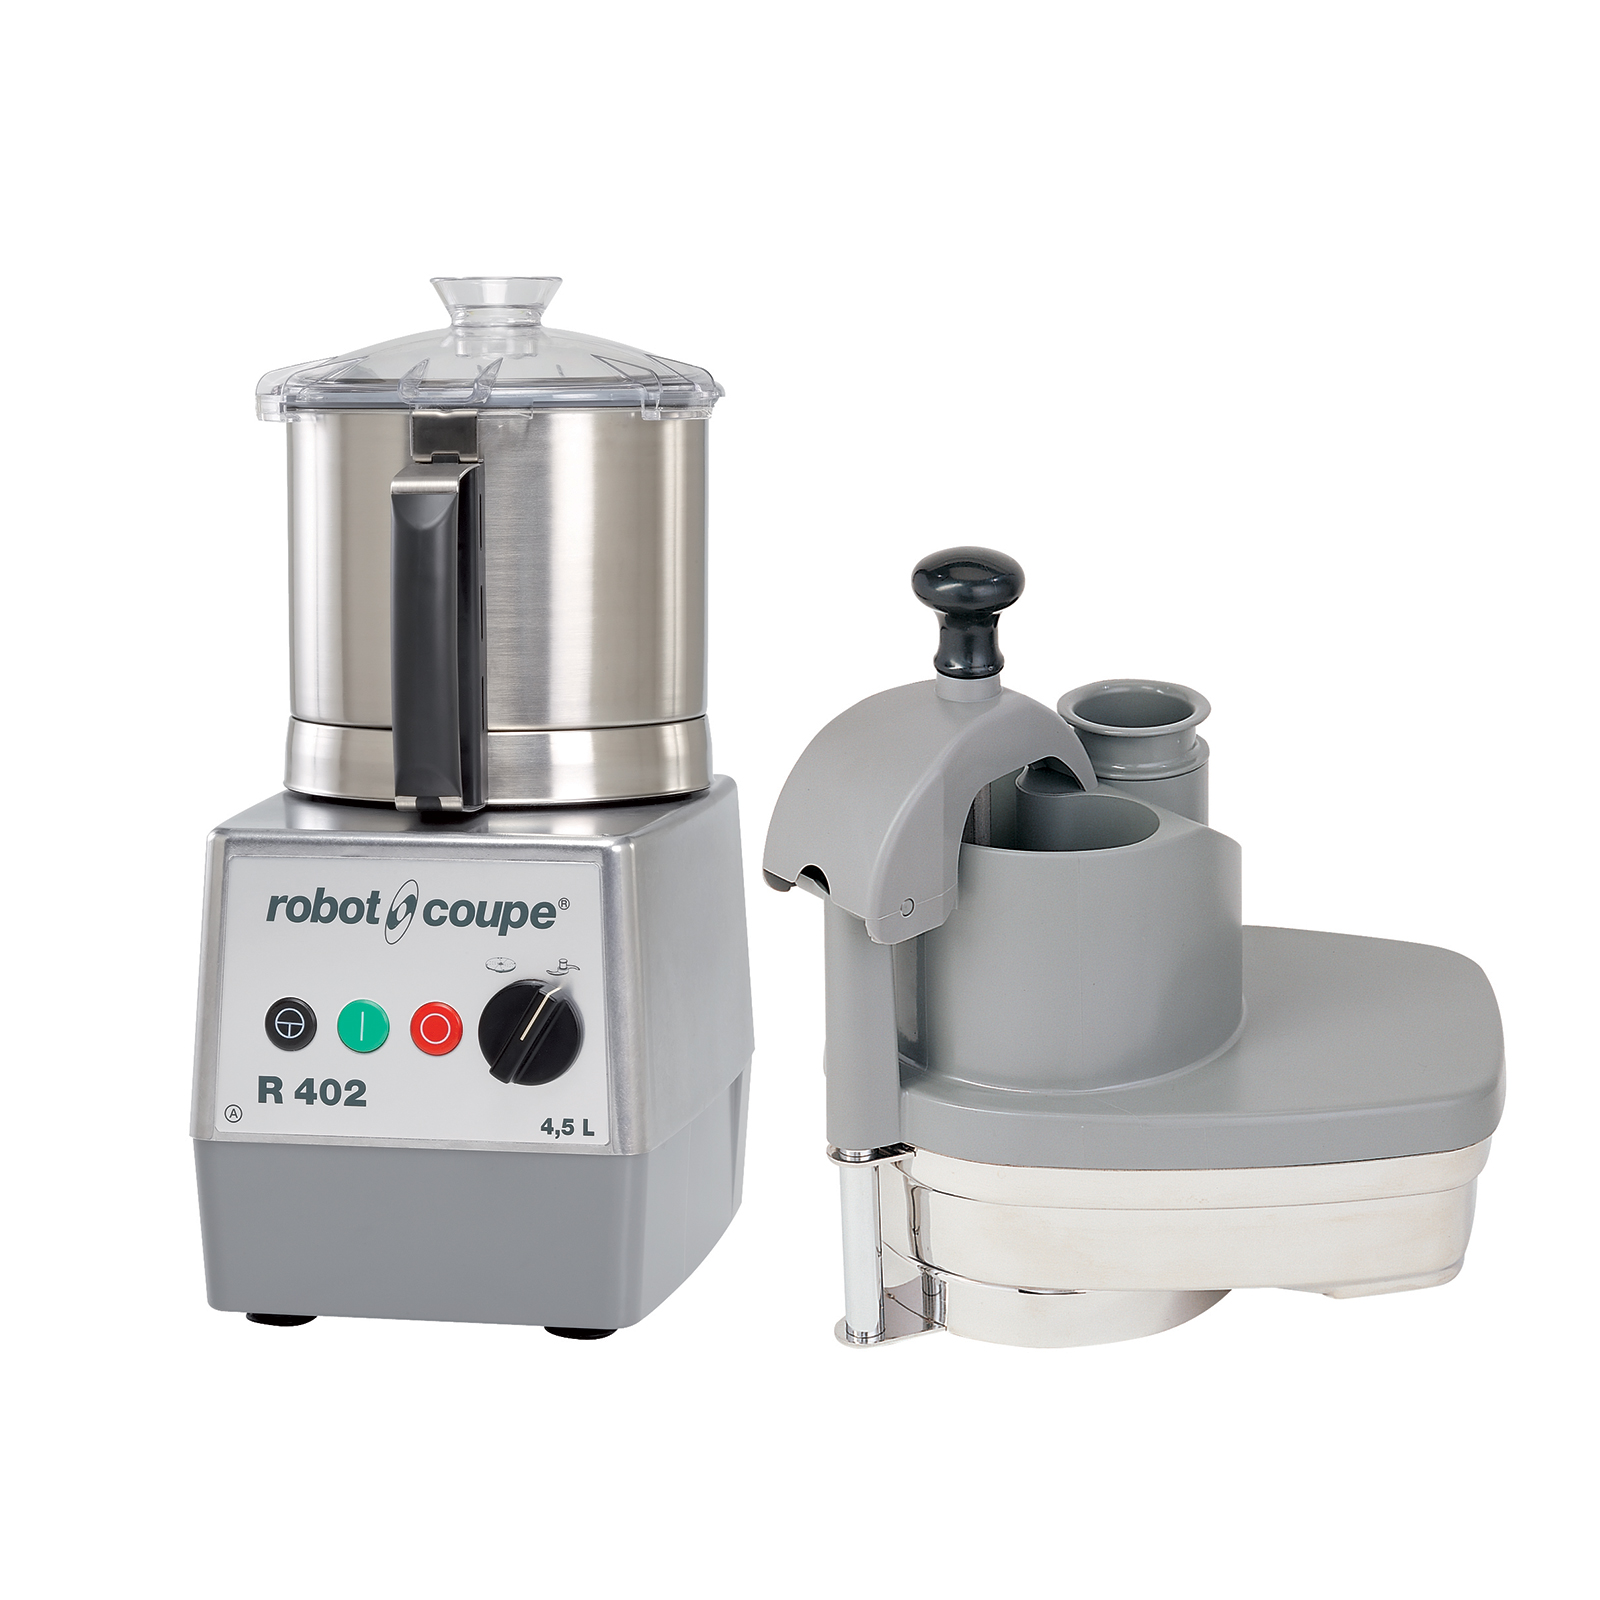 Robot Coupe R402 food processor, benchtop / countertop